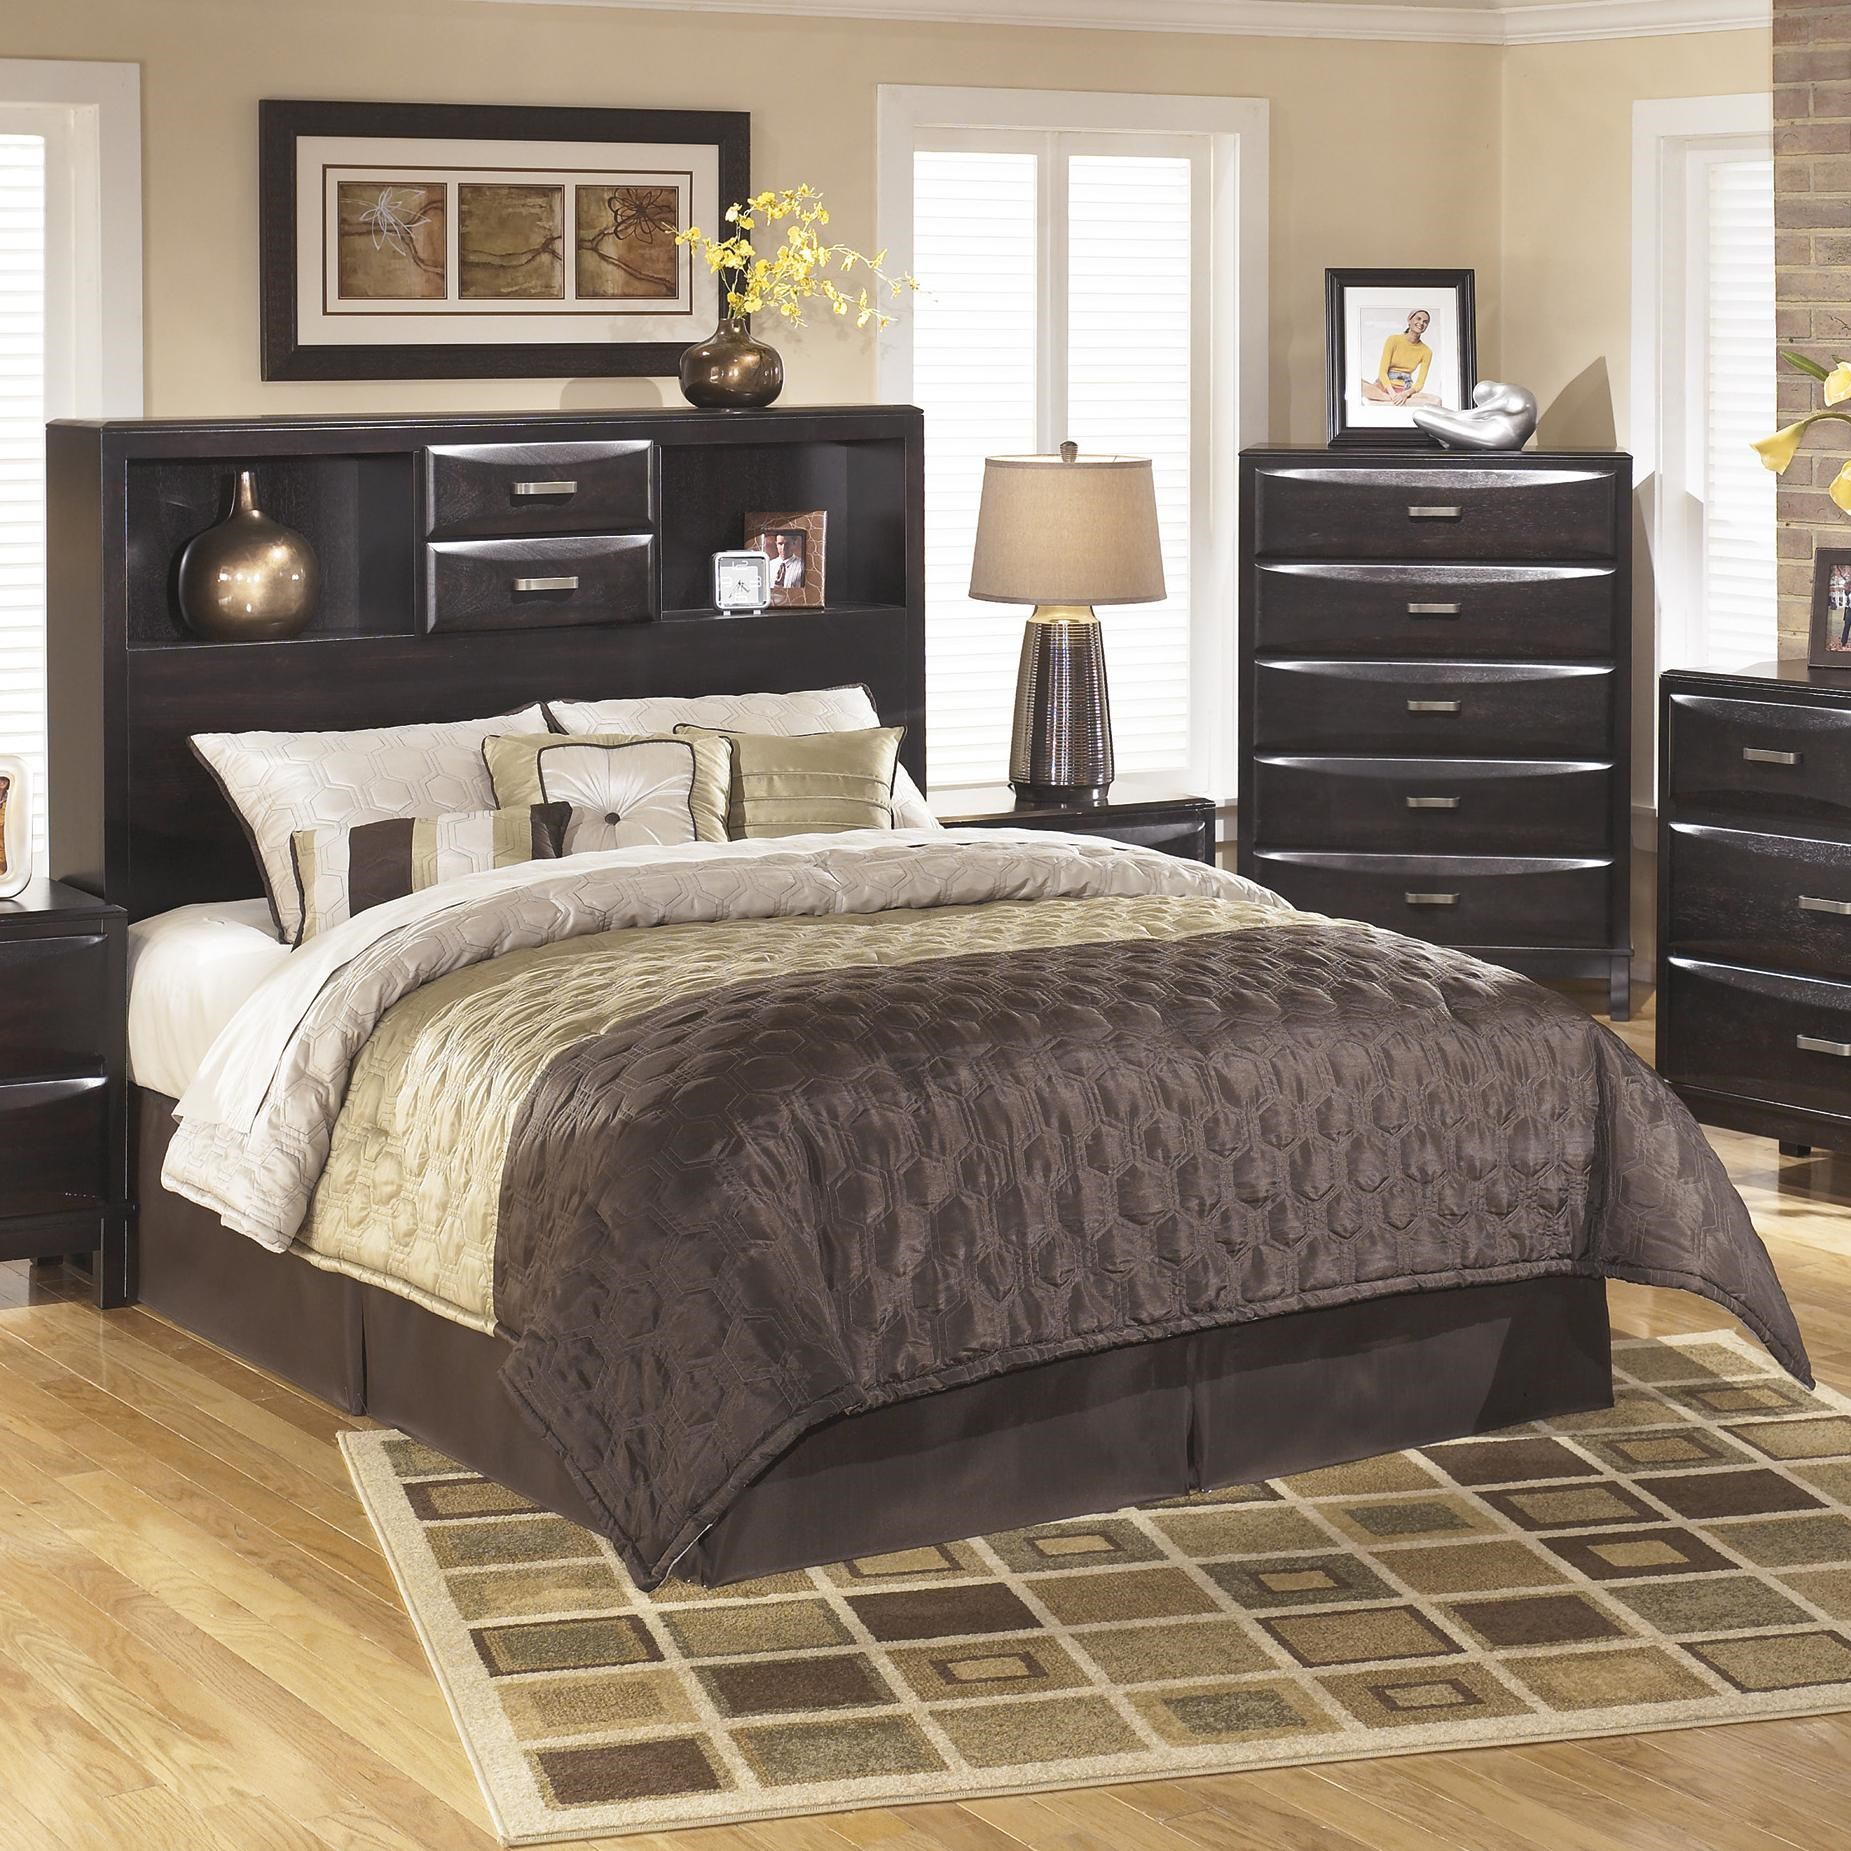 Ashley Furniture KiraQueen Storage Headboard ...  sc 1 st  Furniture and ApplianceMart & Ashley Furniture Kira B473-65 Queen Storage Headboard | Furniture ...